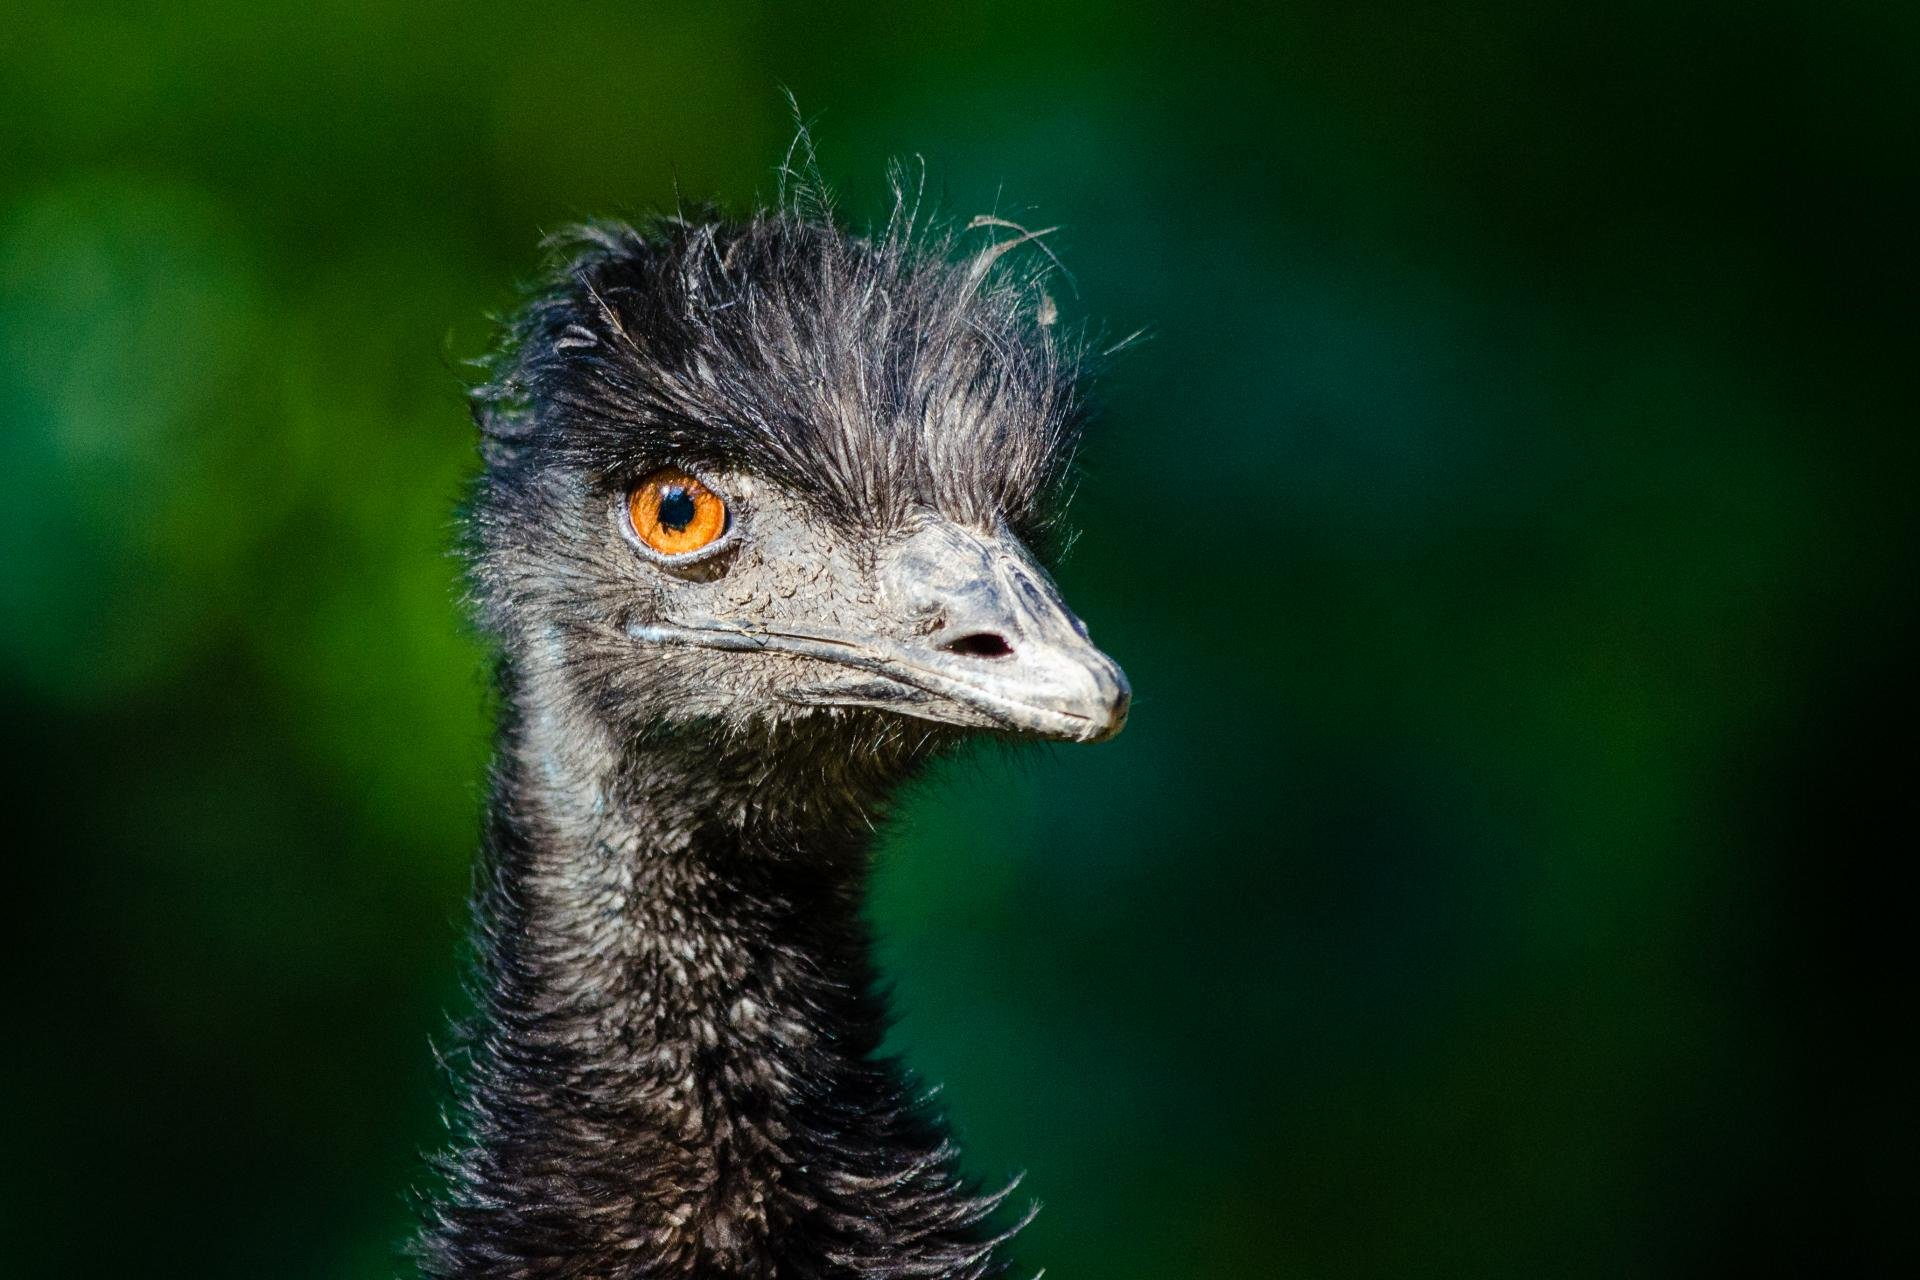 Download hd 1920x1280 Ostrich PC background ID:290162 for free